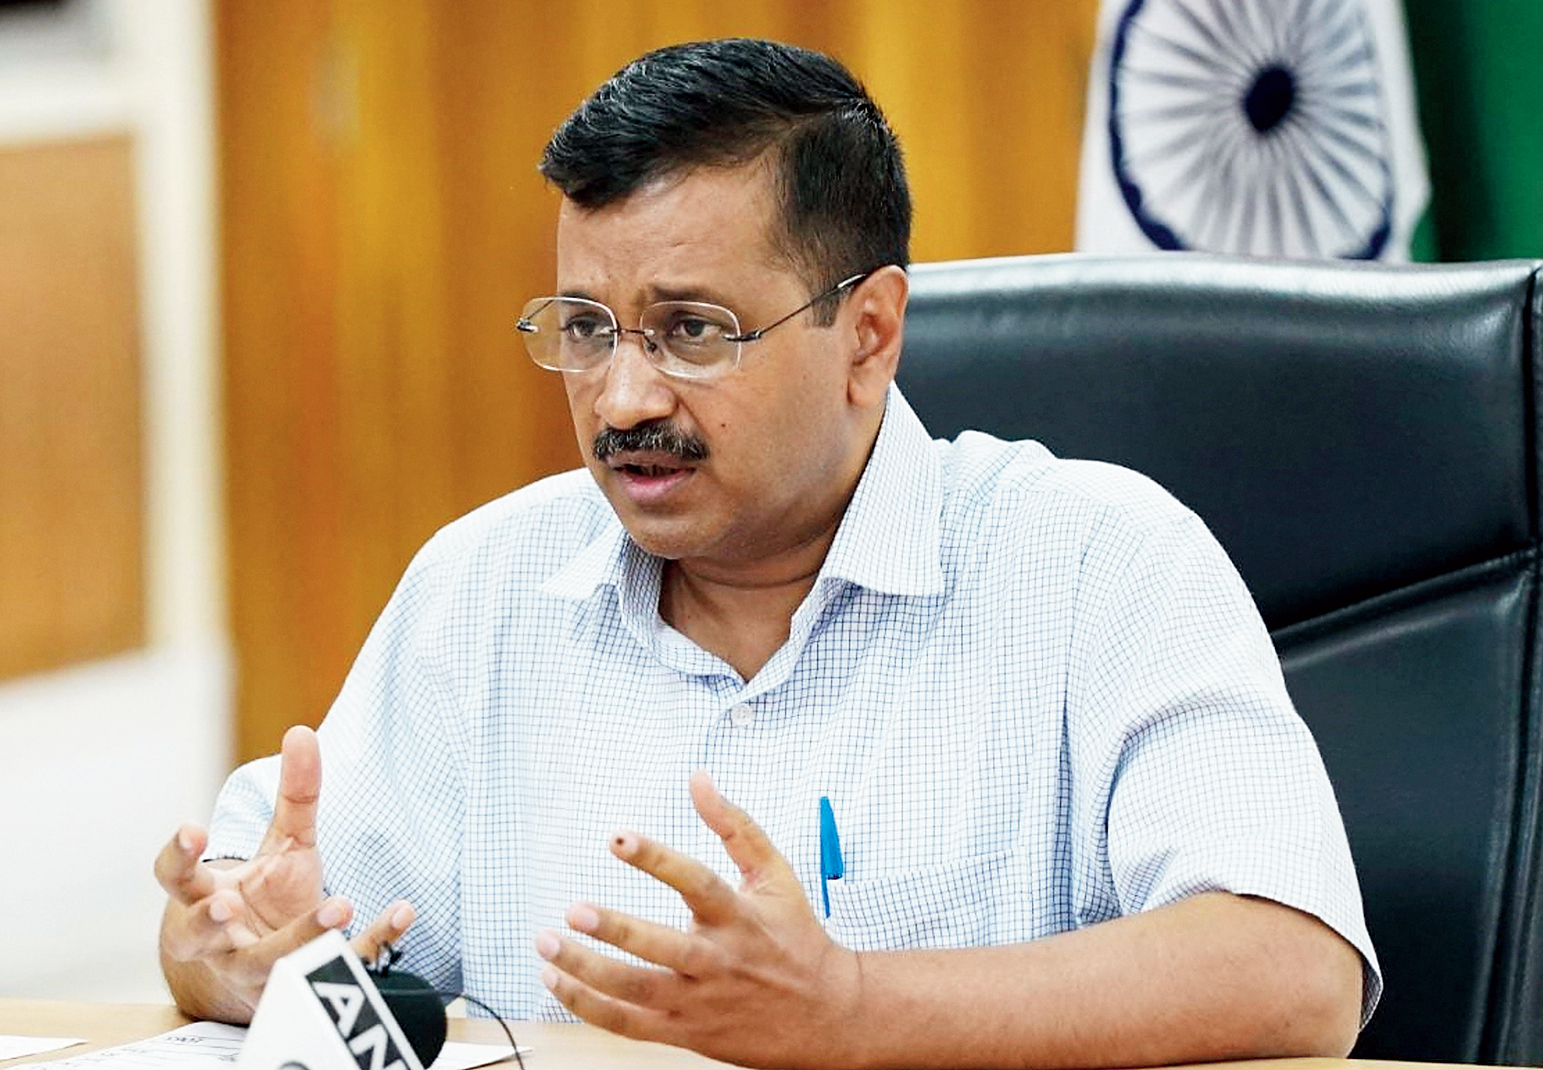 A Twitter image posted by Arvind Kejriwal shows him at a video conference in New Delhi on Tuesday.